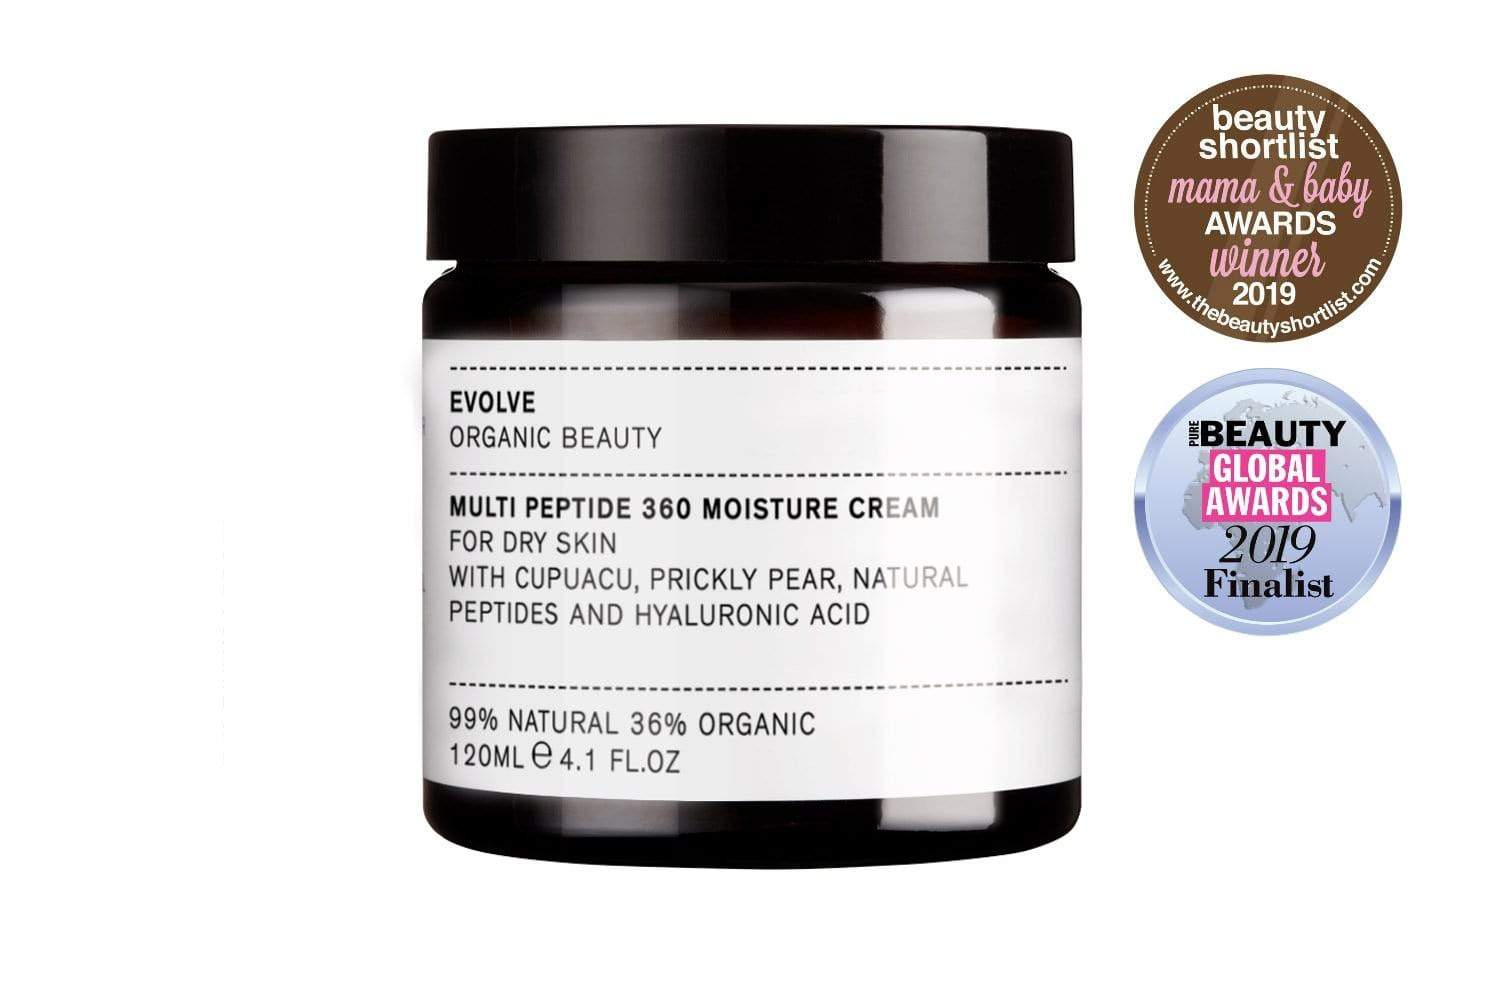 Evolve Organic Beauty Skincare Multi Peptide 360 Moisture Cream - 120ml Supersize